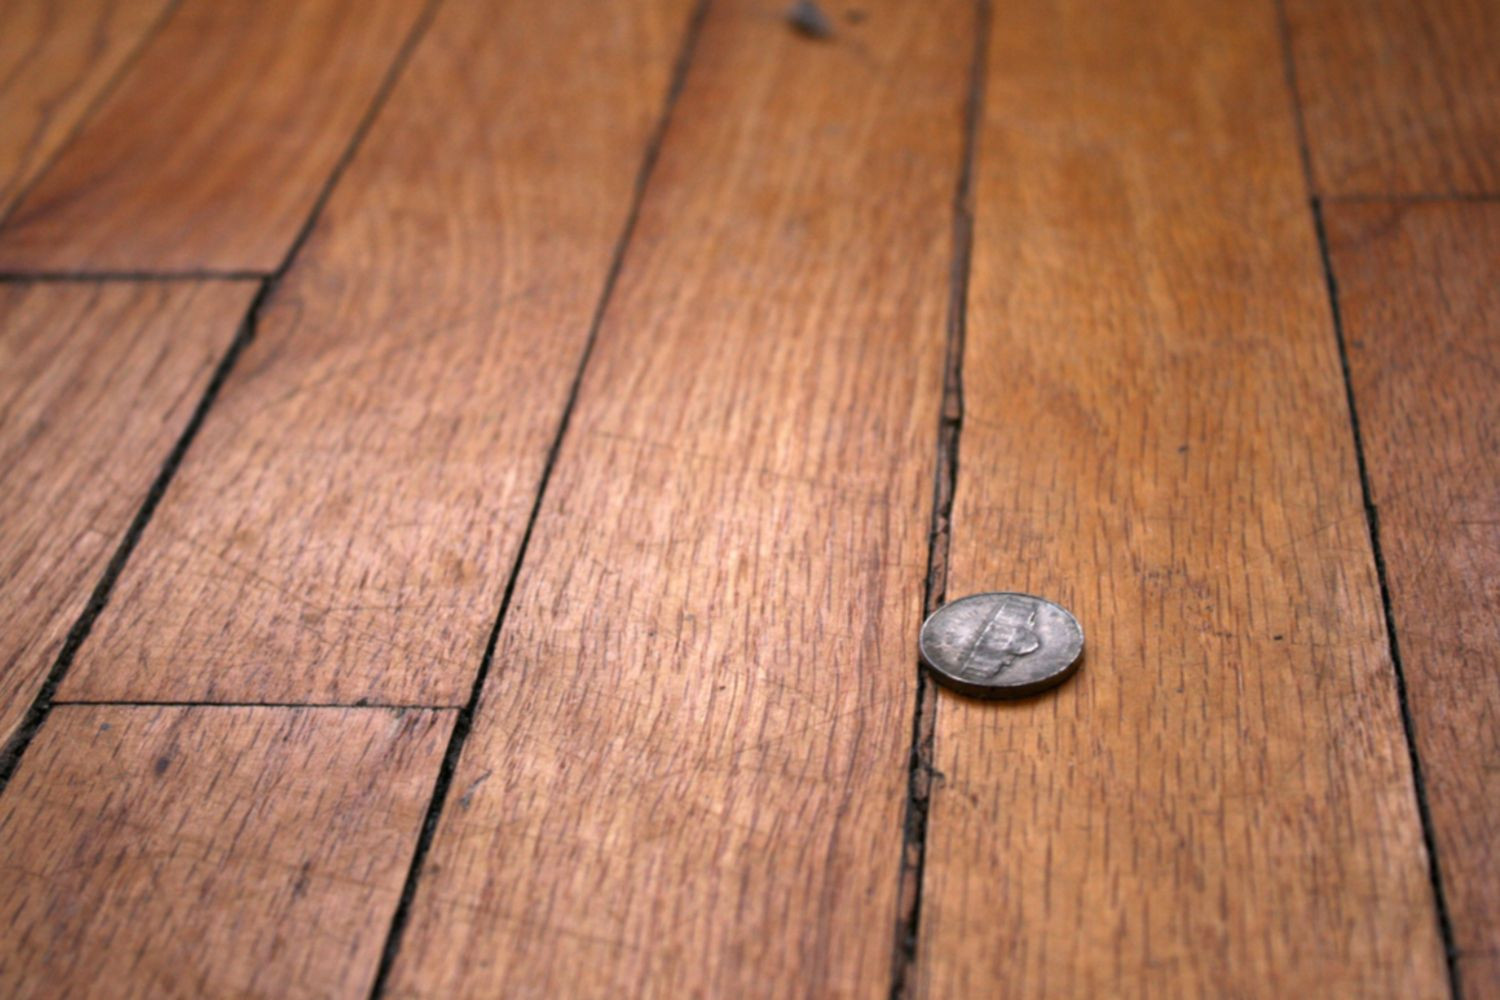 solid hardwood flooring uk of how to repair gaps between floorboards for wood floor with gaps between boards 1500 x 1000 56a49eb25f9b58b7d0d7df8d